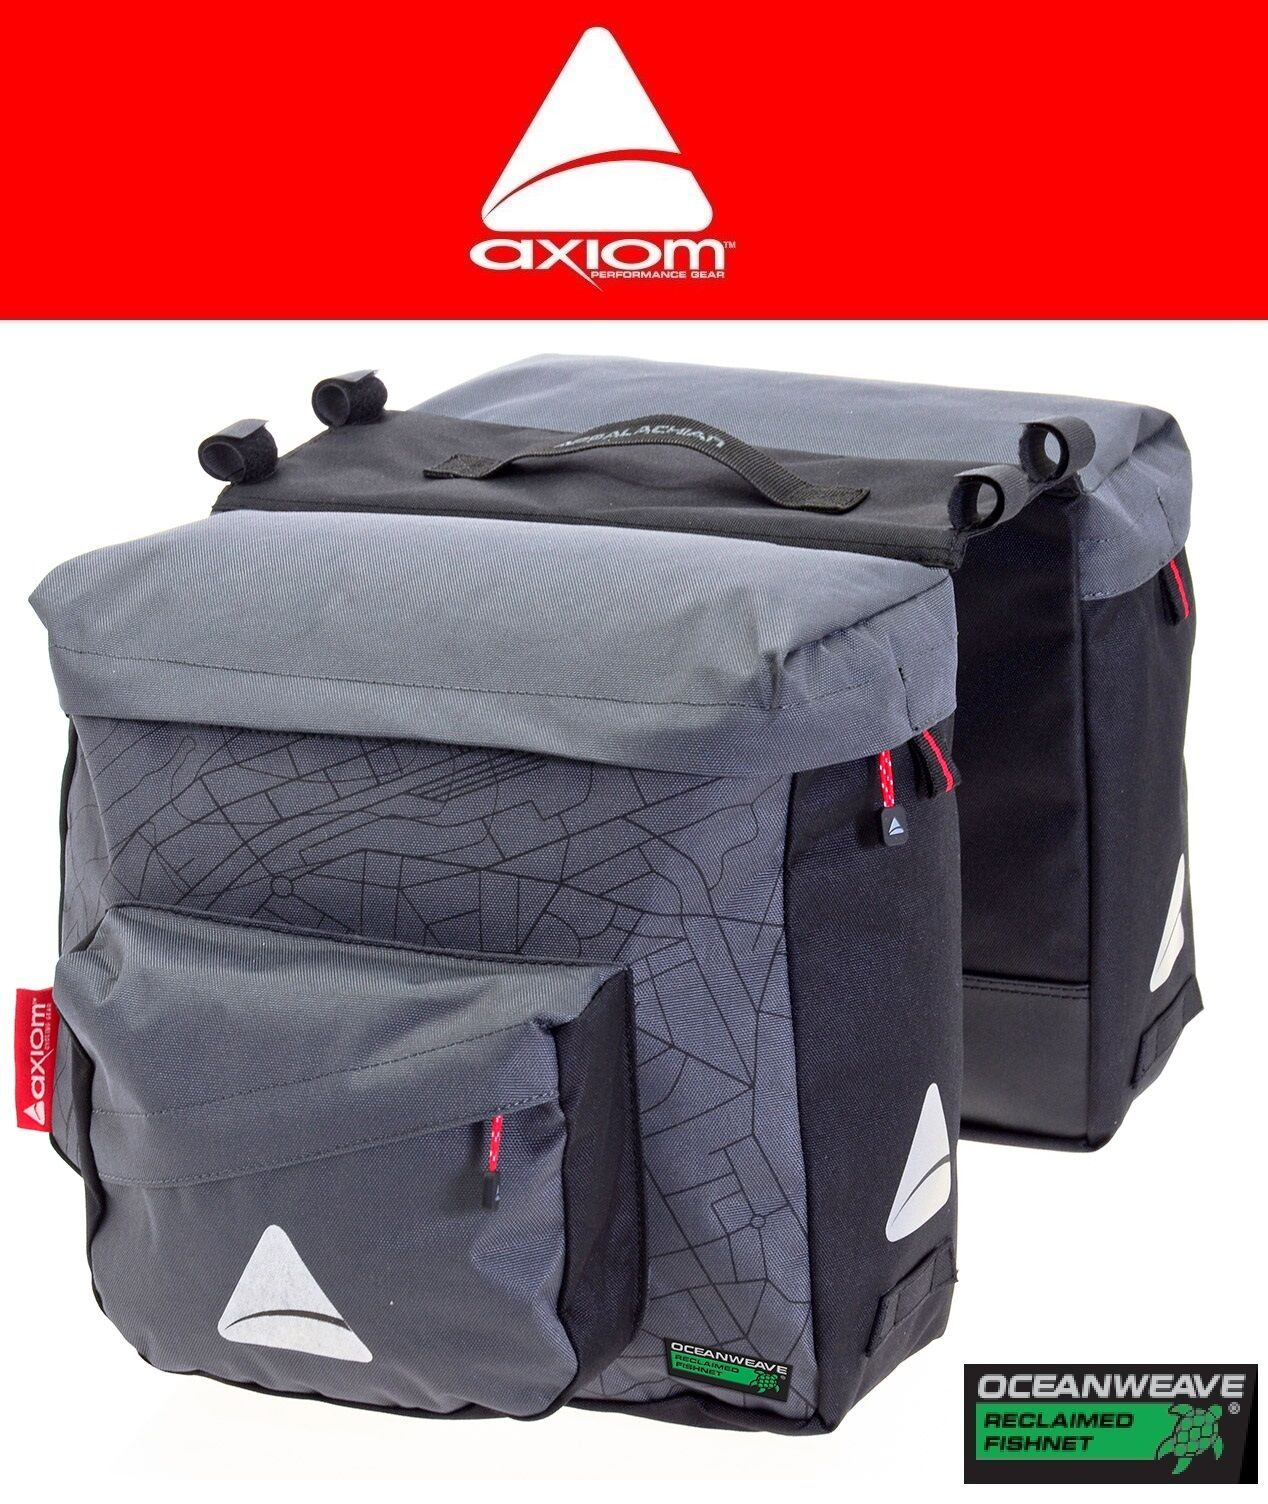 Bicycle Commuter Bag Axiom Pannier Seymour O-Weave Twin P25